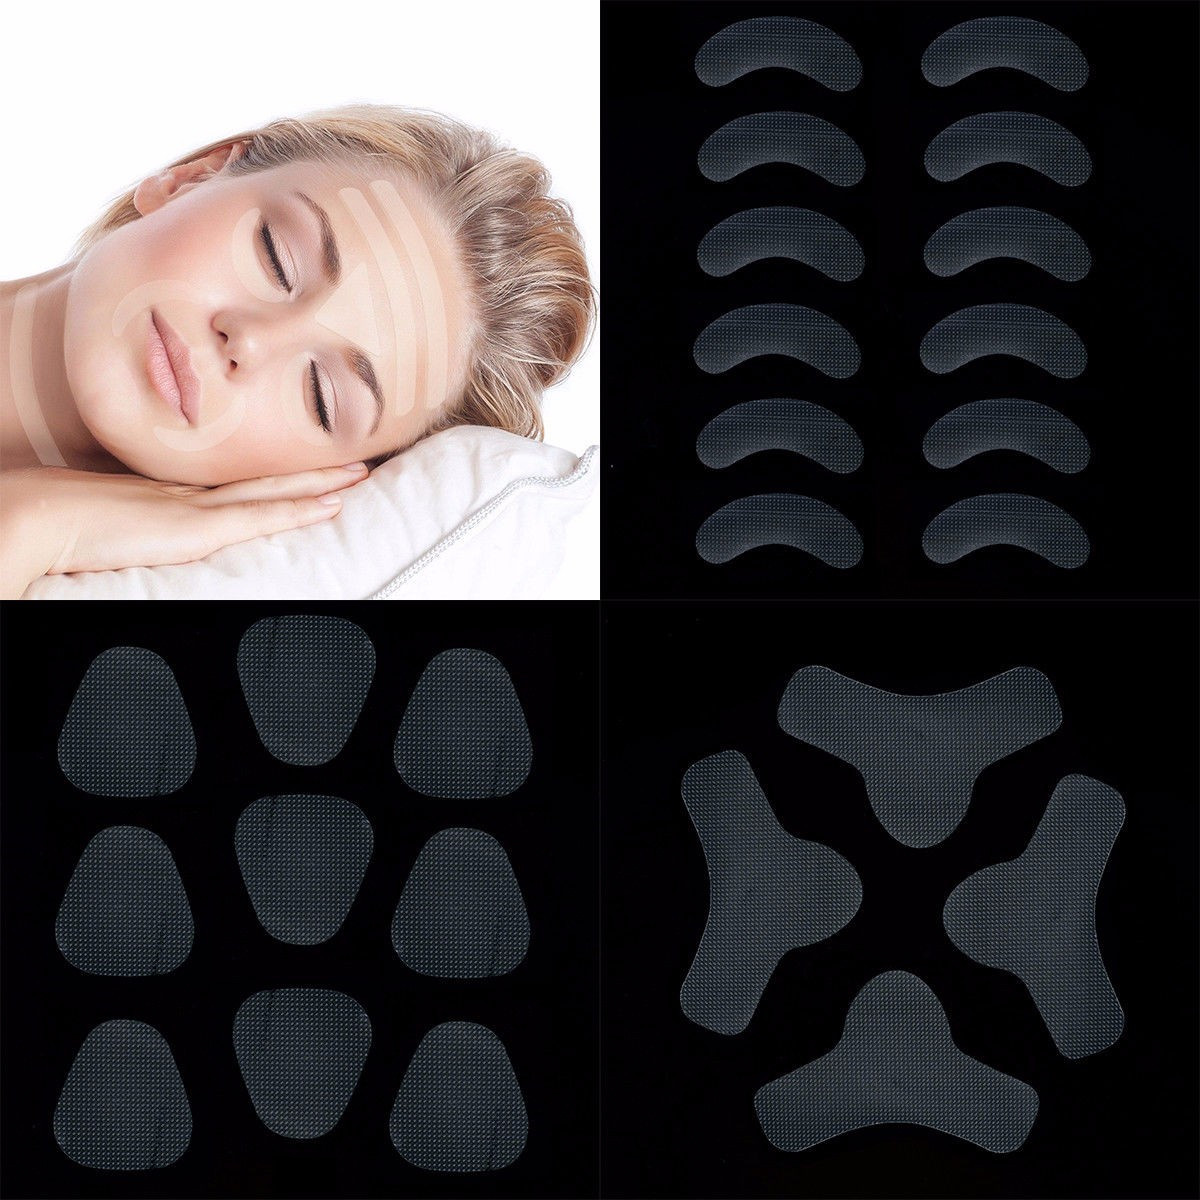 27/24/12pcs Face Lift Up Tape Sticker V Mask V Face Shape Artifact Invisible Sticker Lift Chin Wrinkle Sagging Make Up Tools